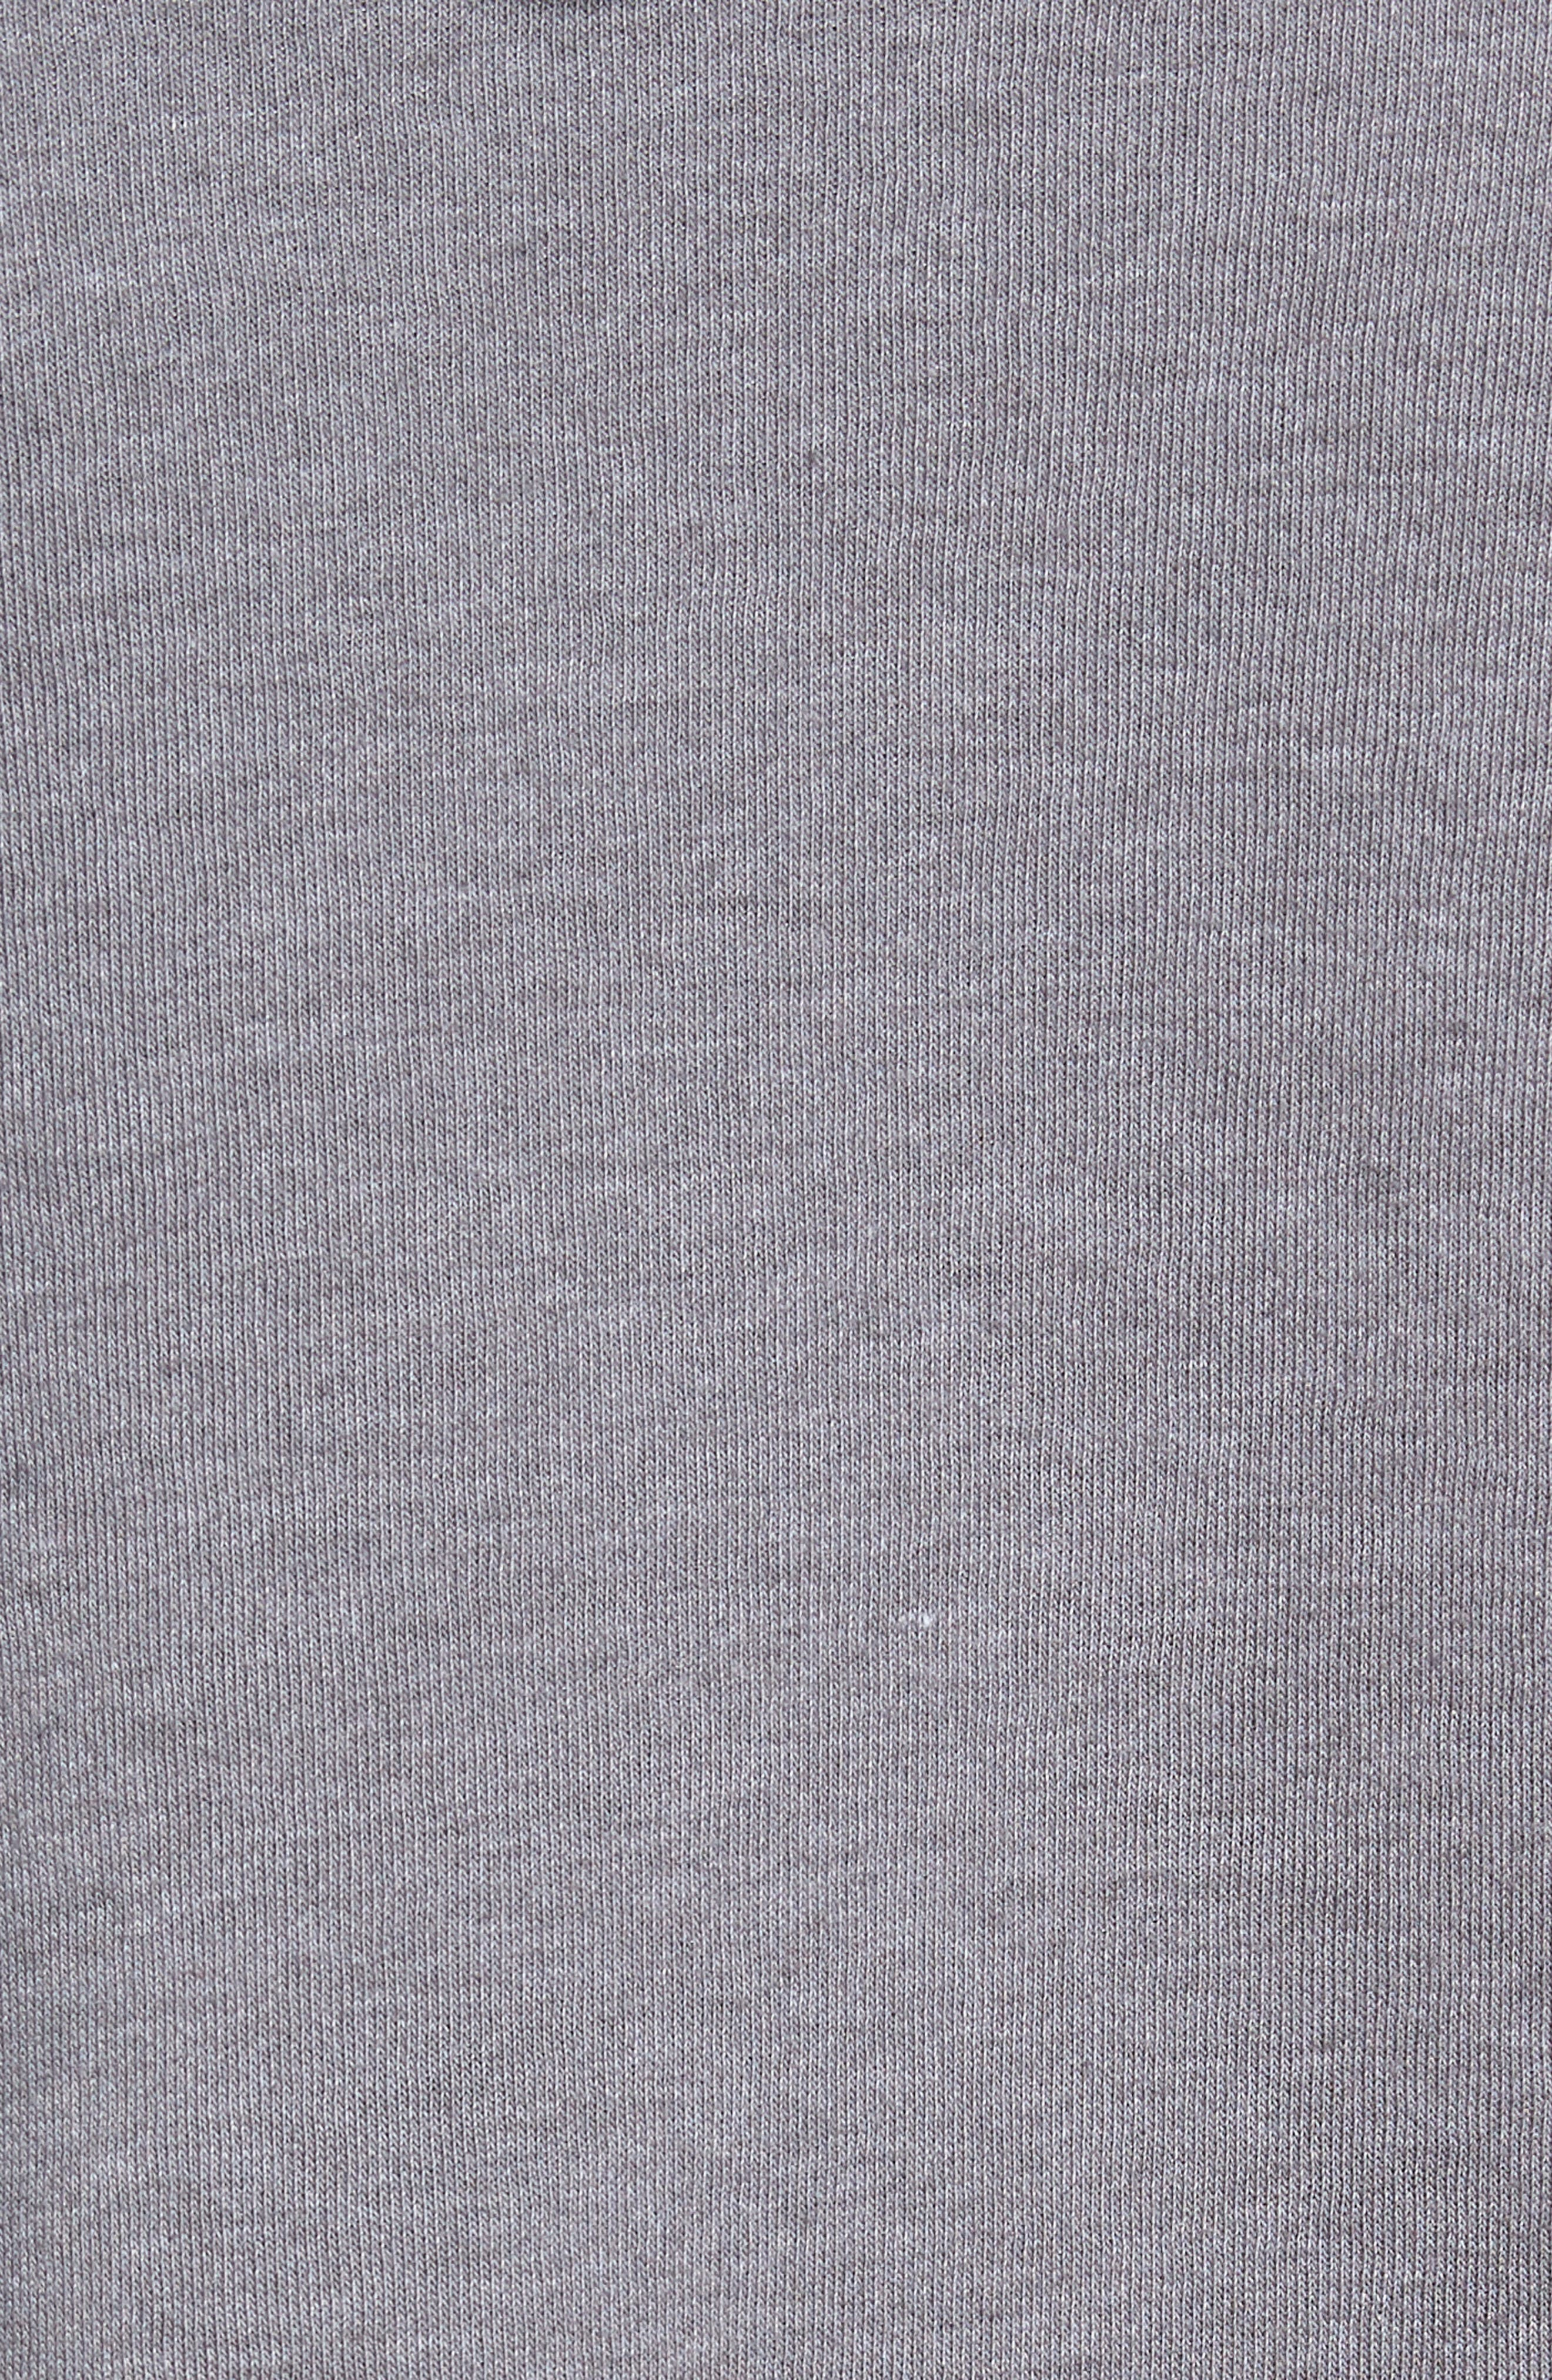 North Face Logo Patch Pullover Hoodie,                             Alternate thumbnail 5, color,                             TNF MEDIUM GREY HEATHER